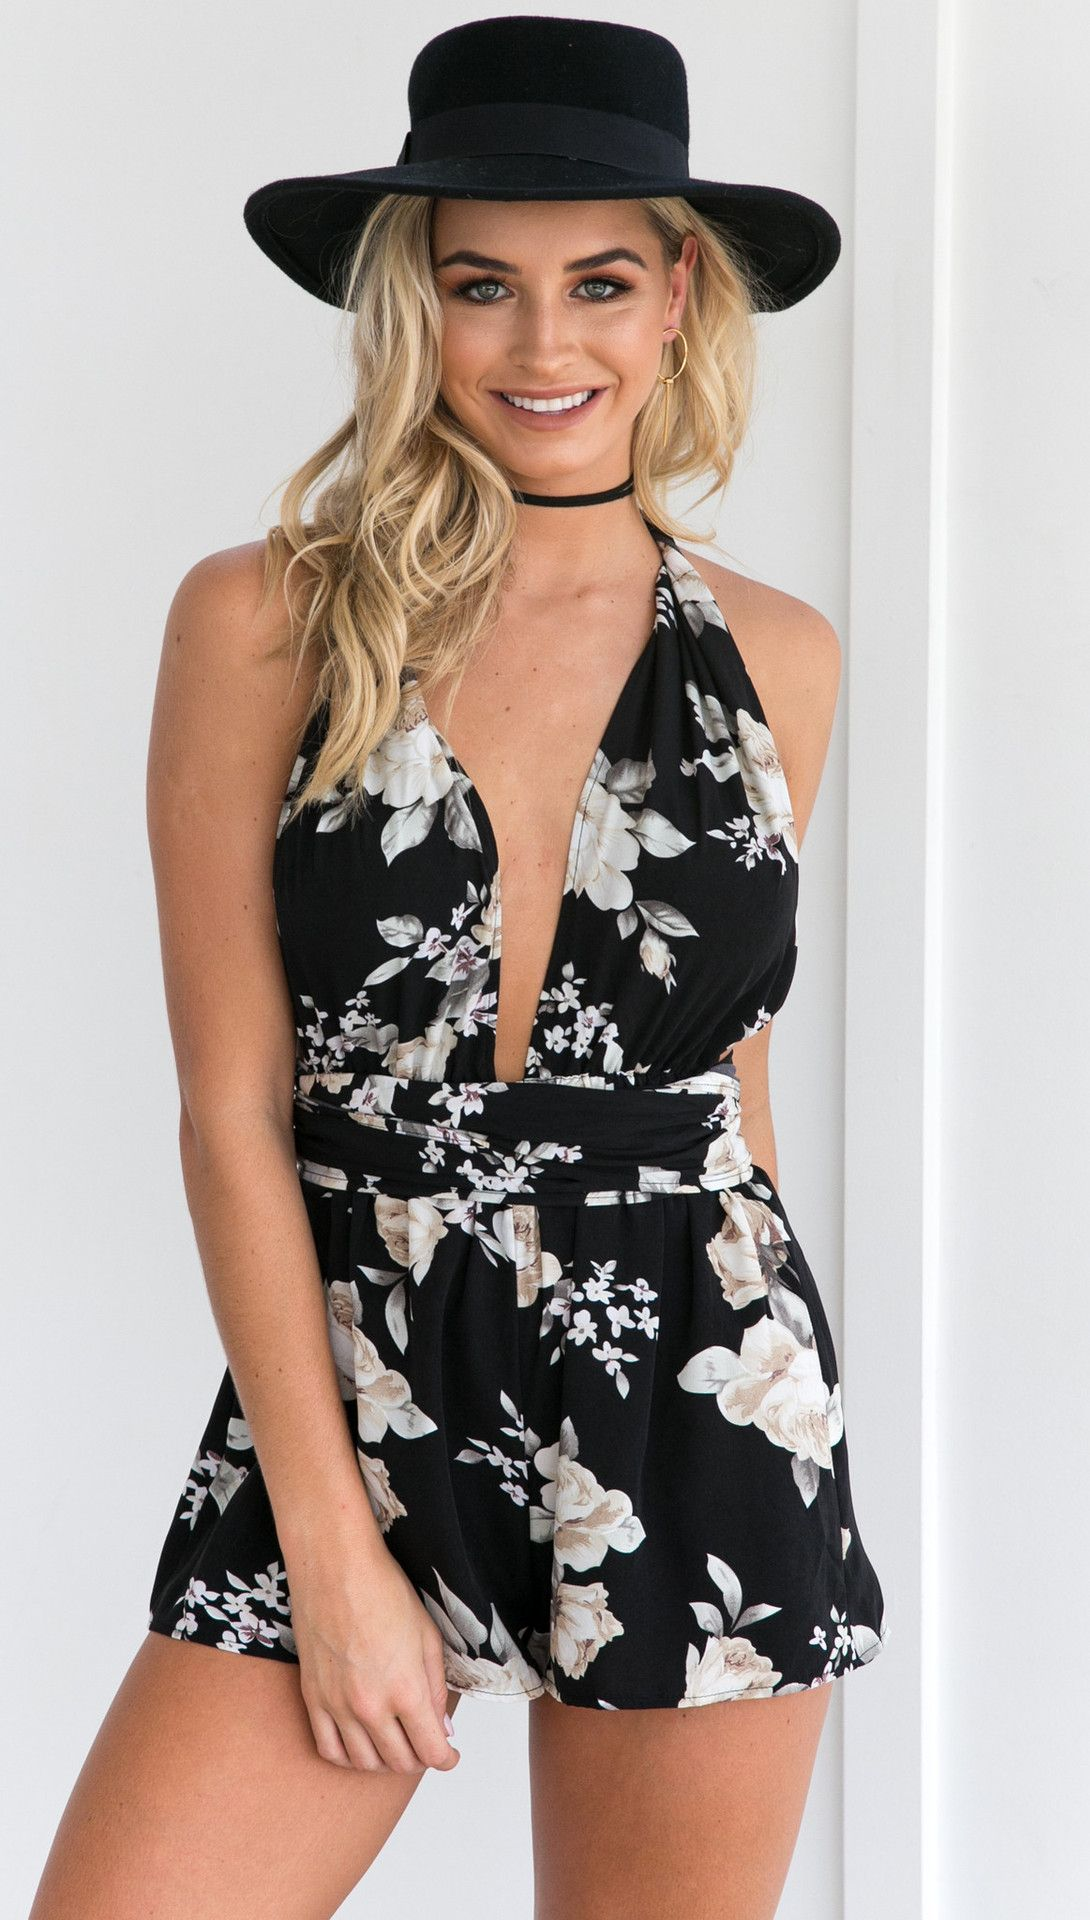 f091563e29f Women s Halter Neck Backless Floral Printed Casual Romper ...